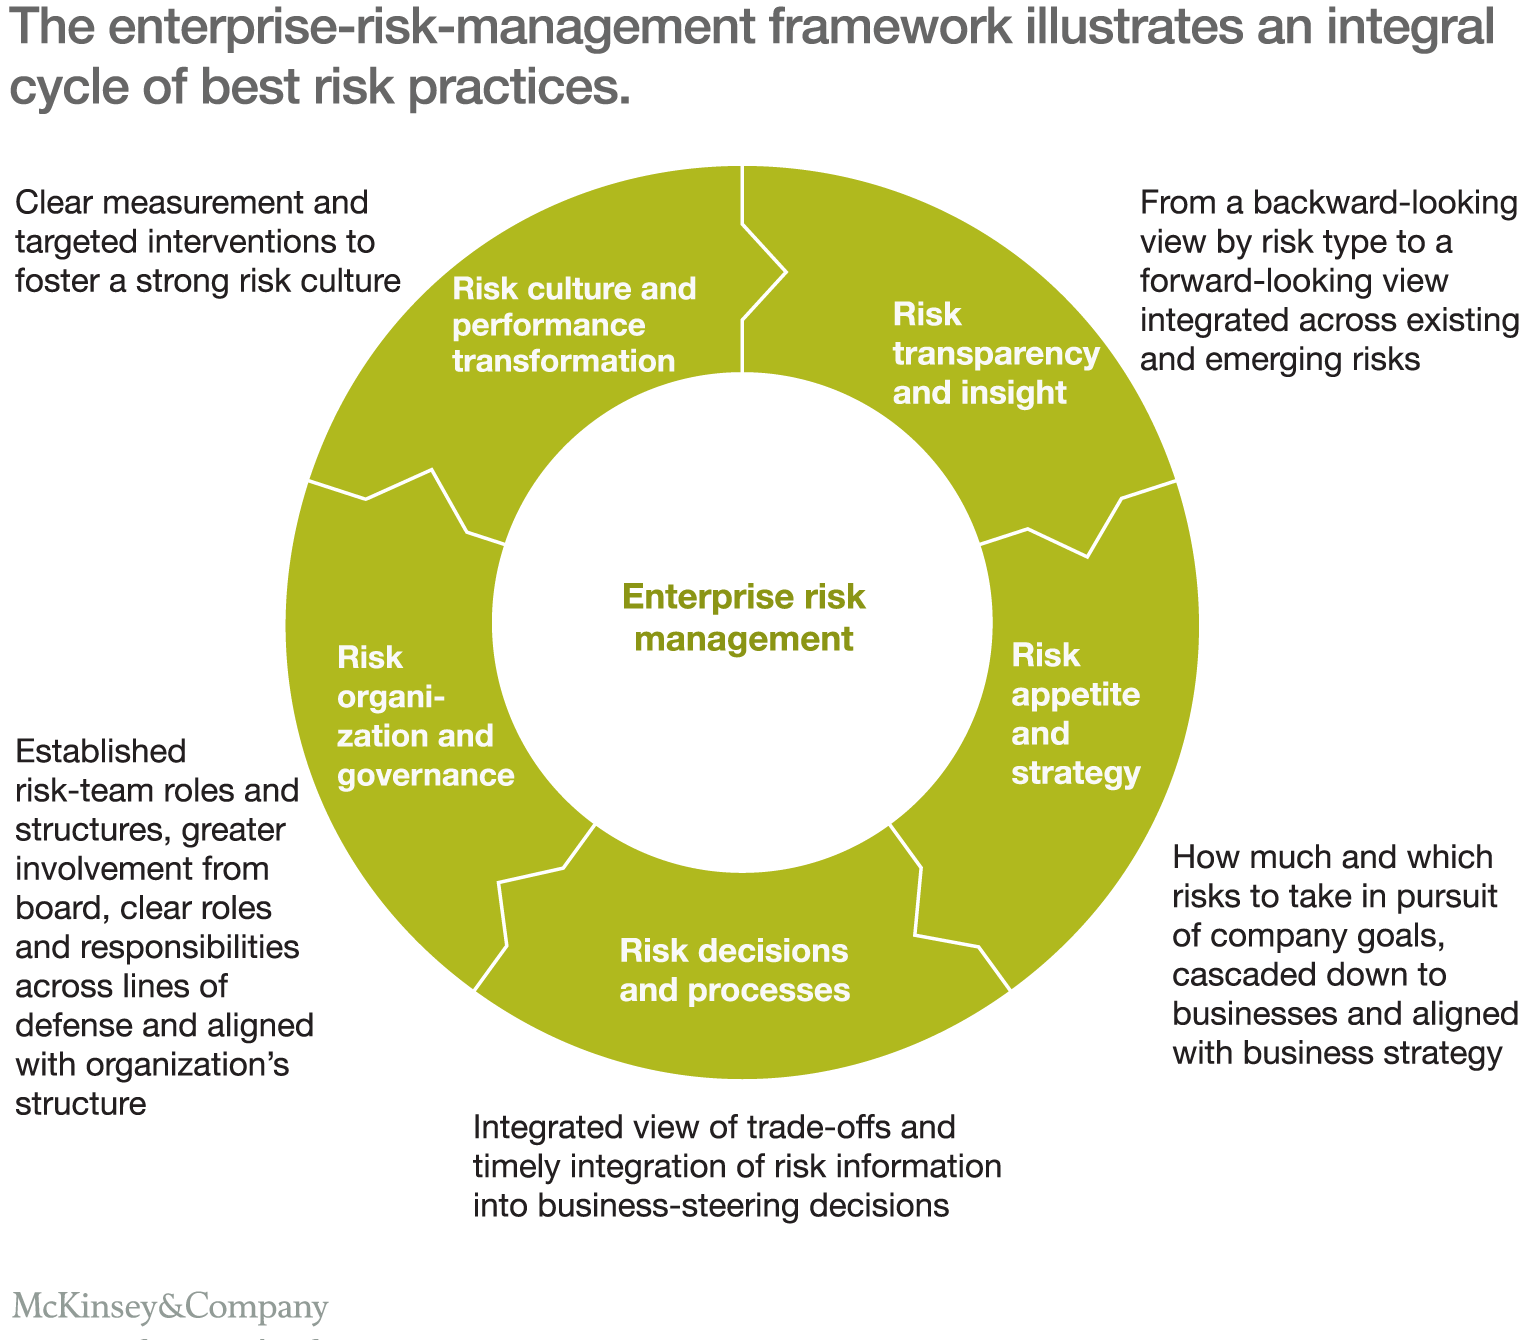 thesis on corporate governance and risk management Hugo boss considers a responsible approach to risks to be a key component of  good corporate governance the risk management system anchored in the.